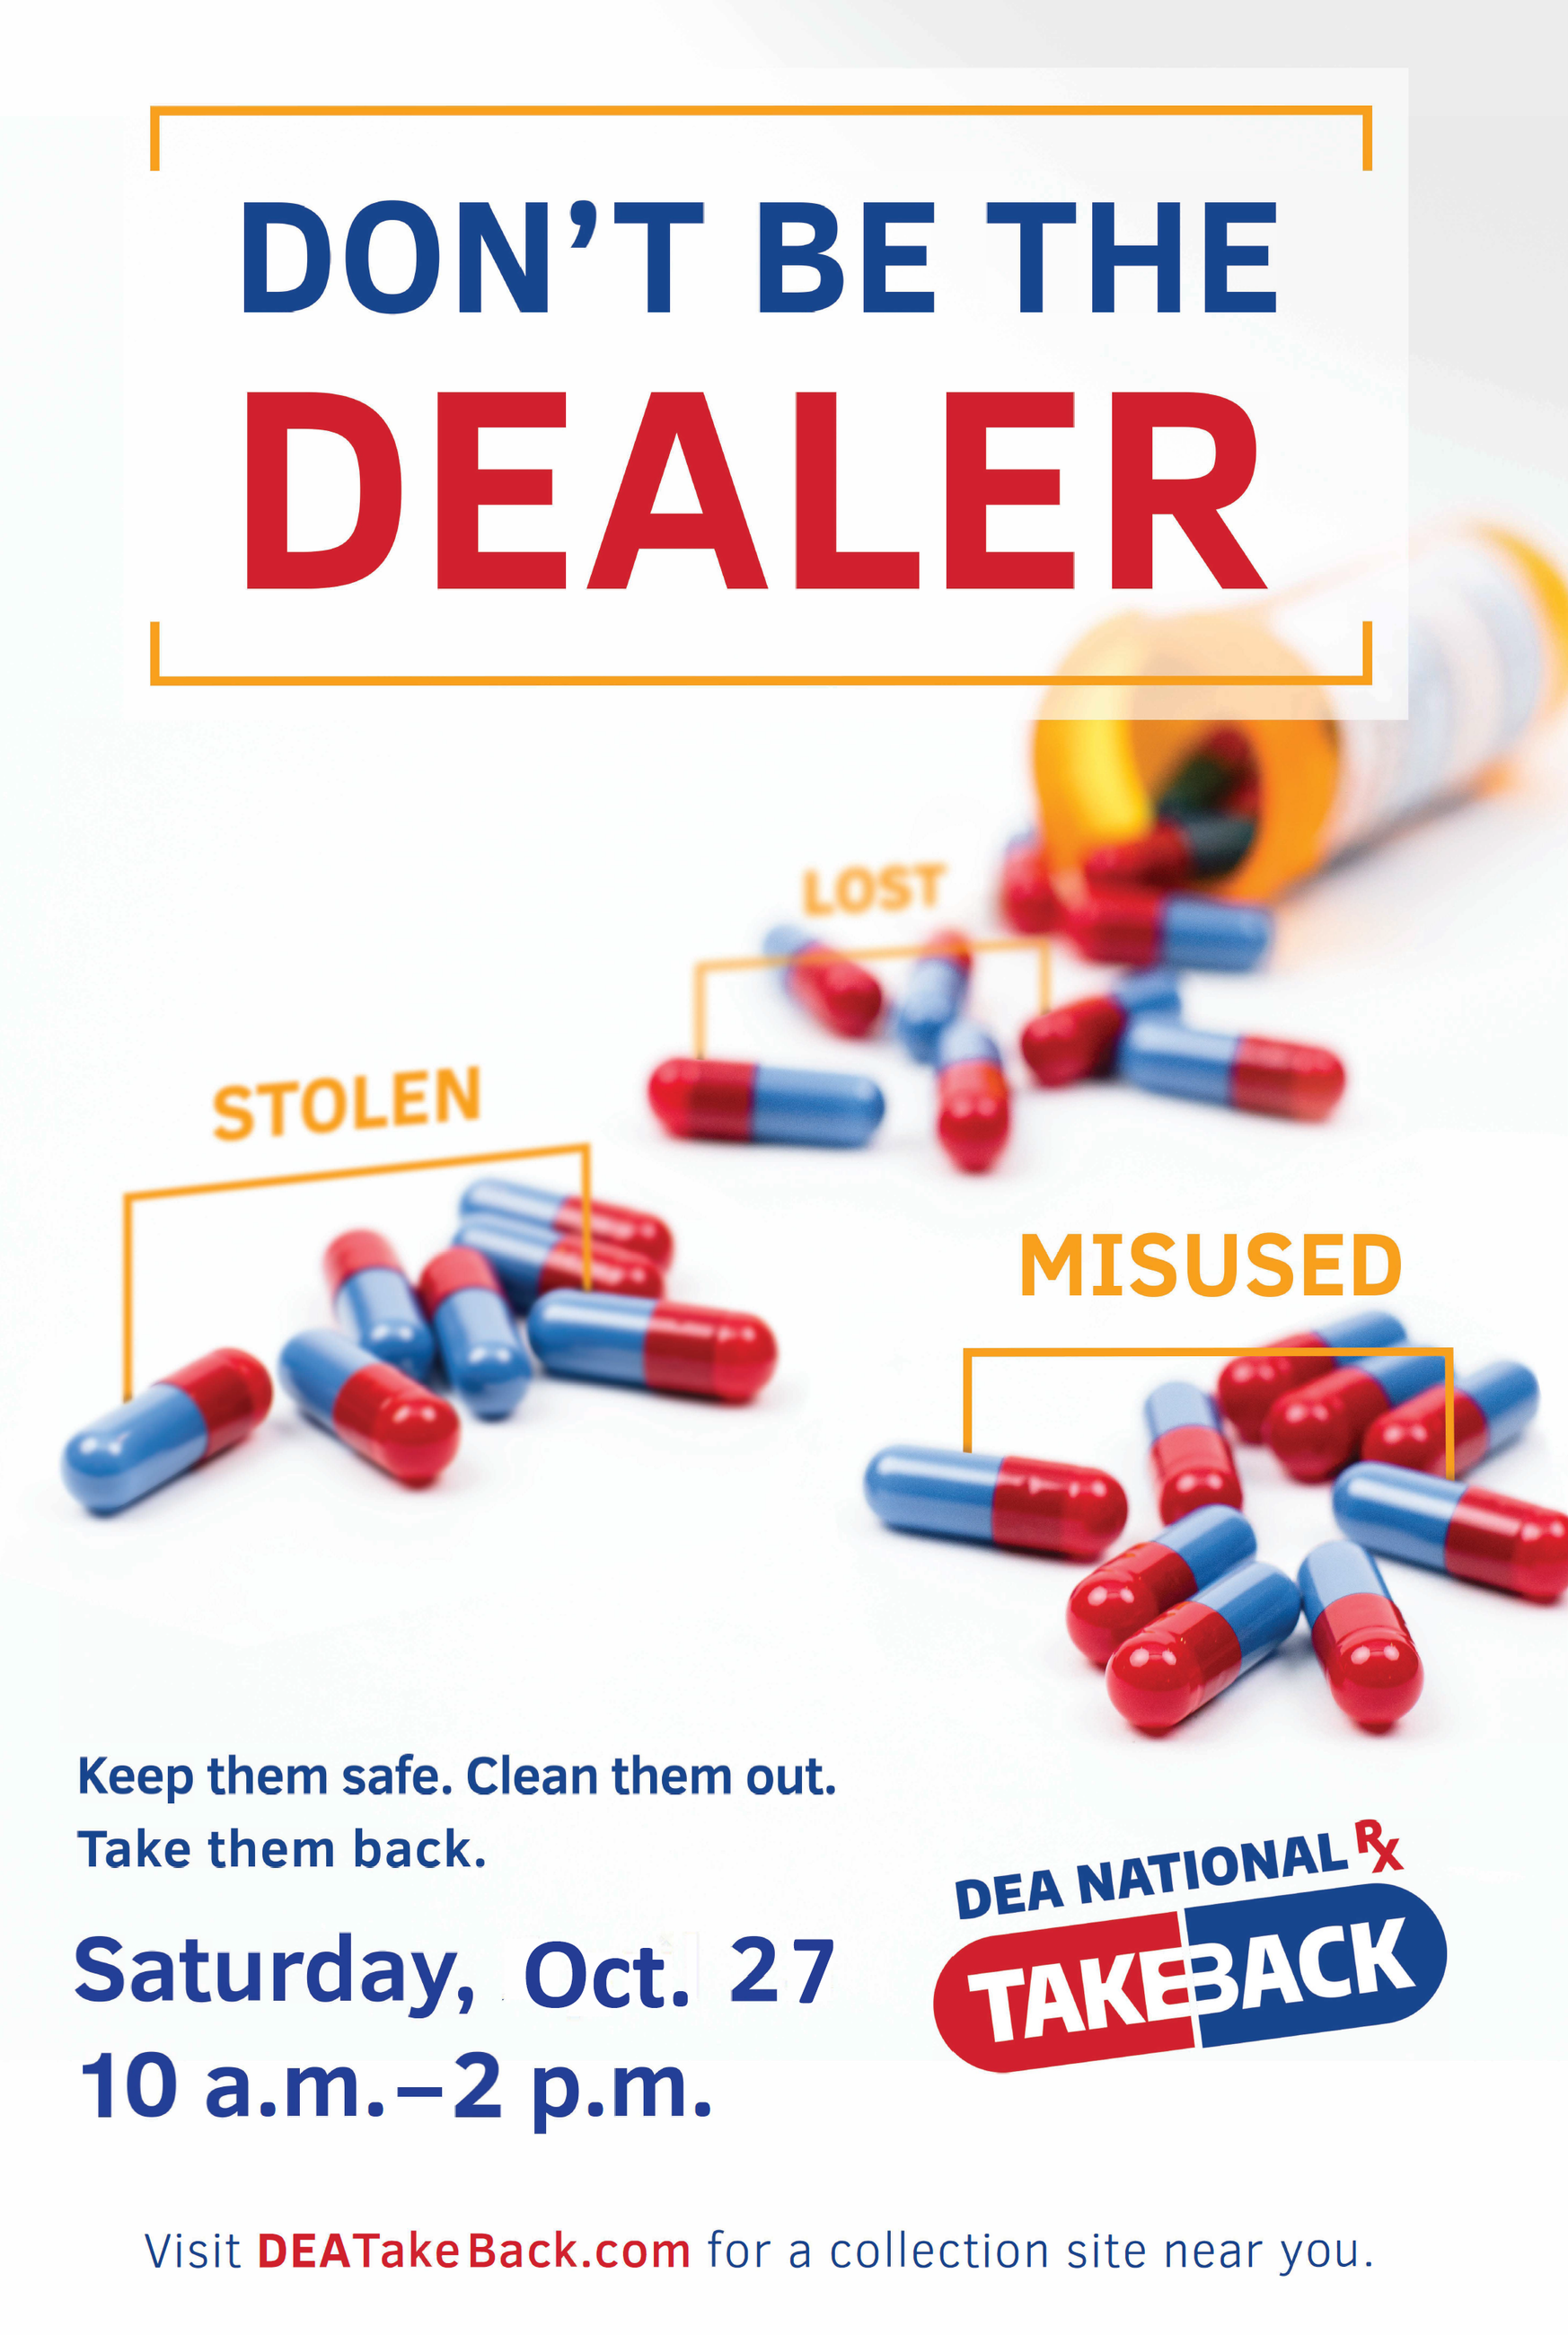 Drug take back Oct 27